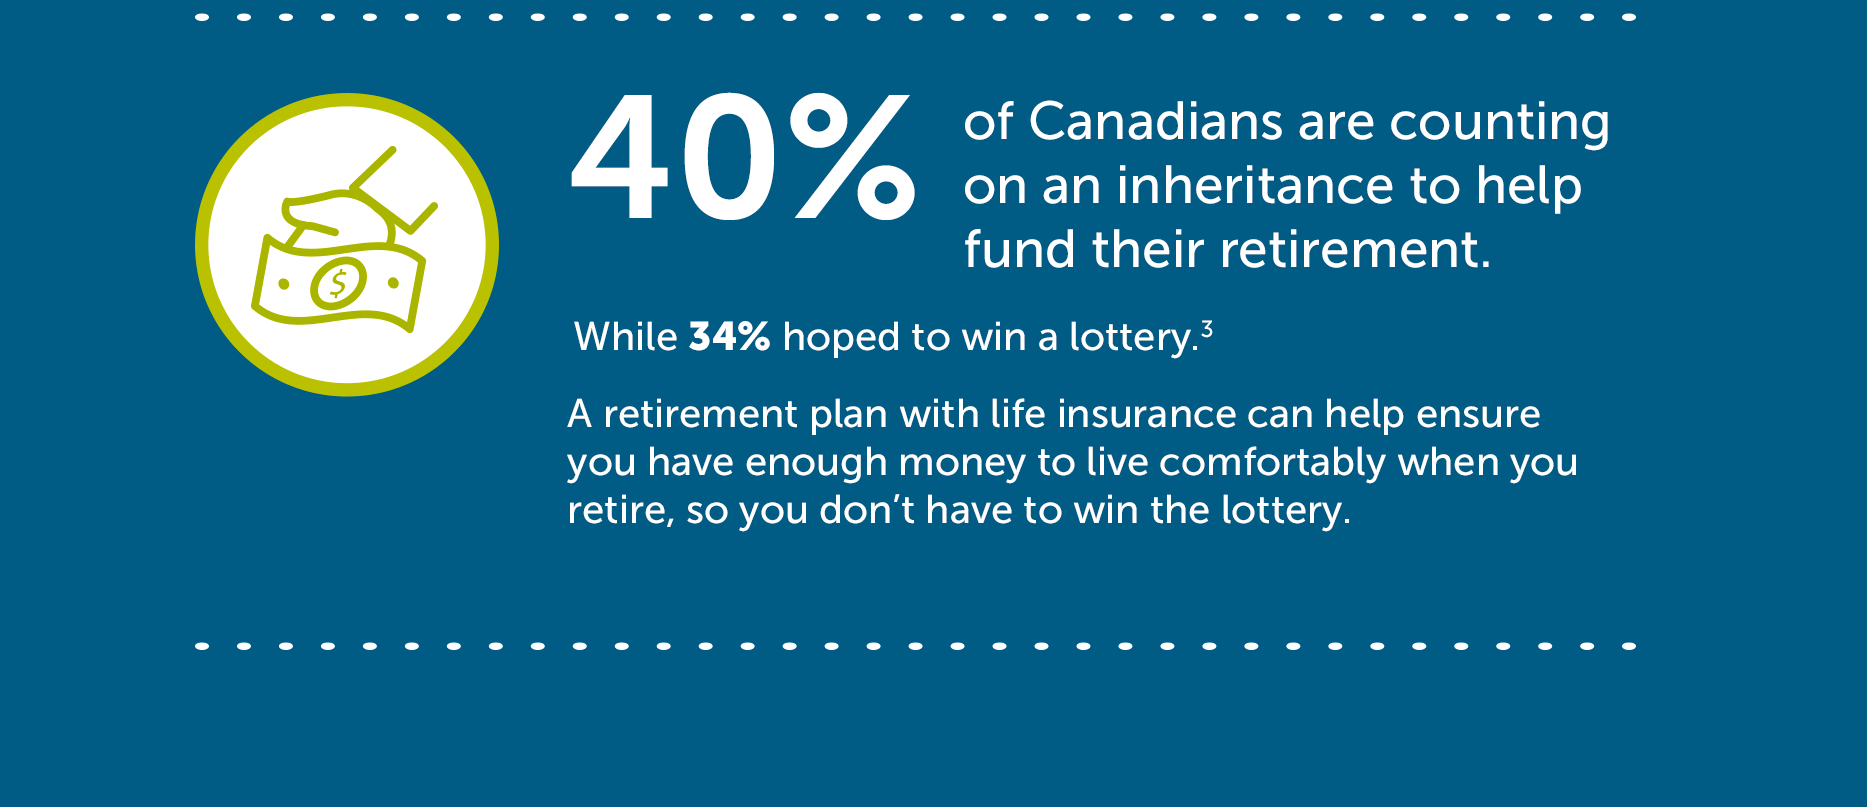 Canadian retirement statistic